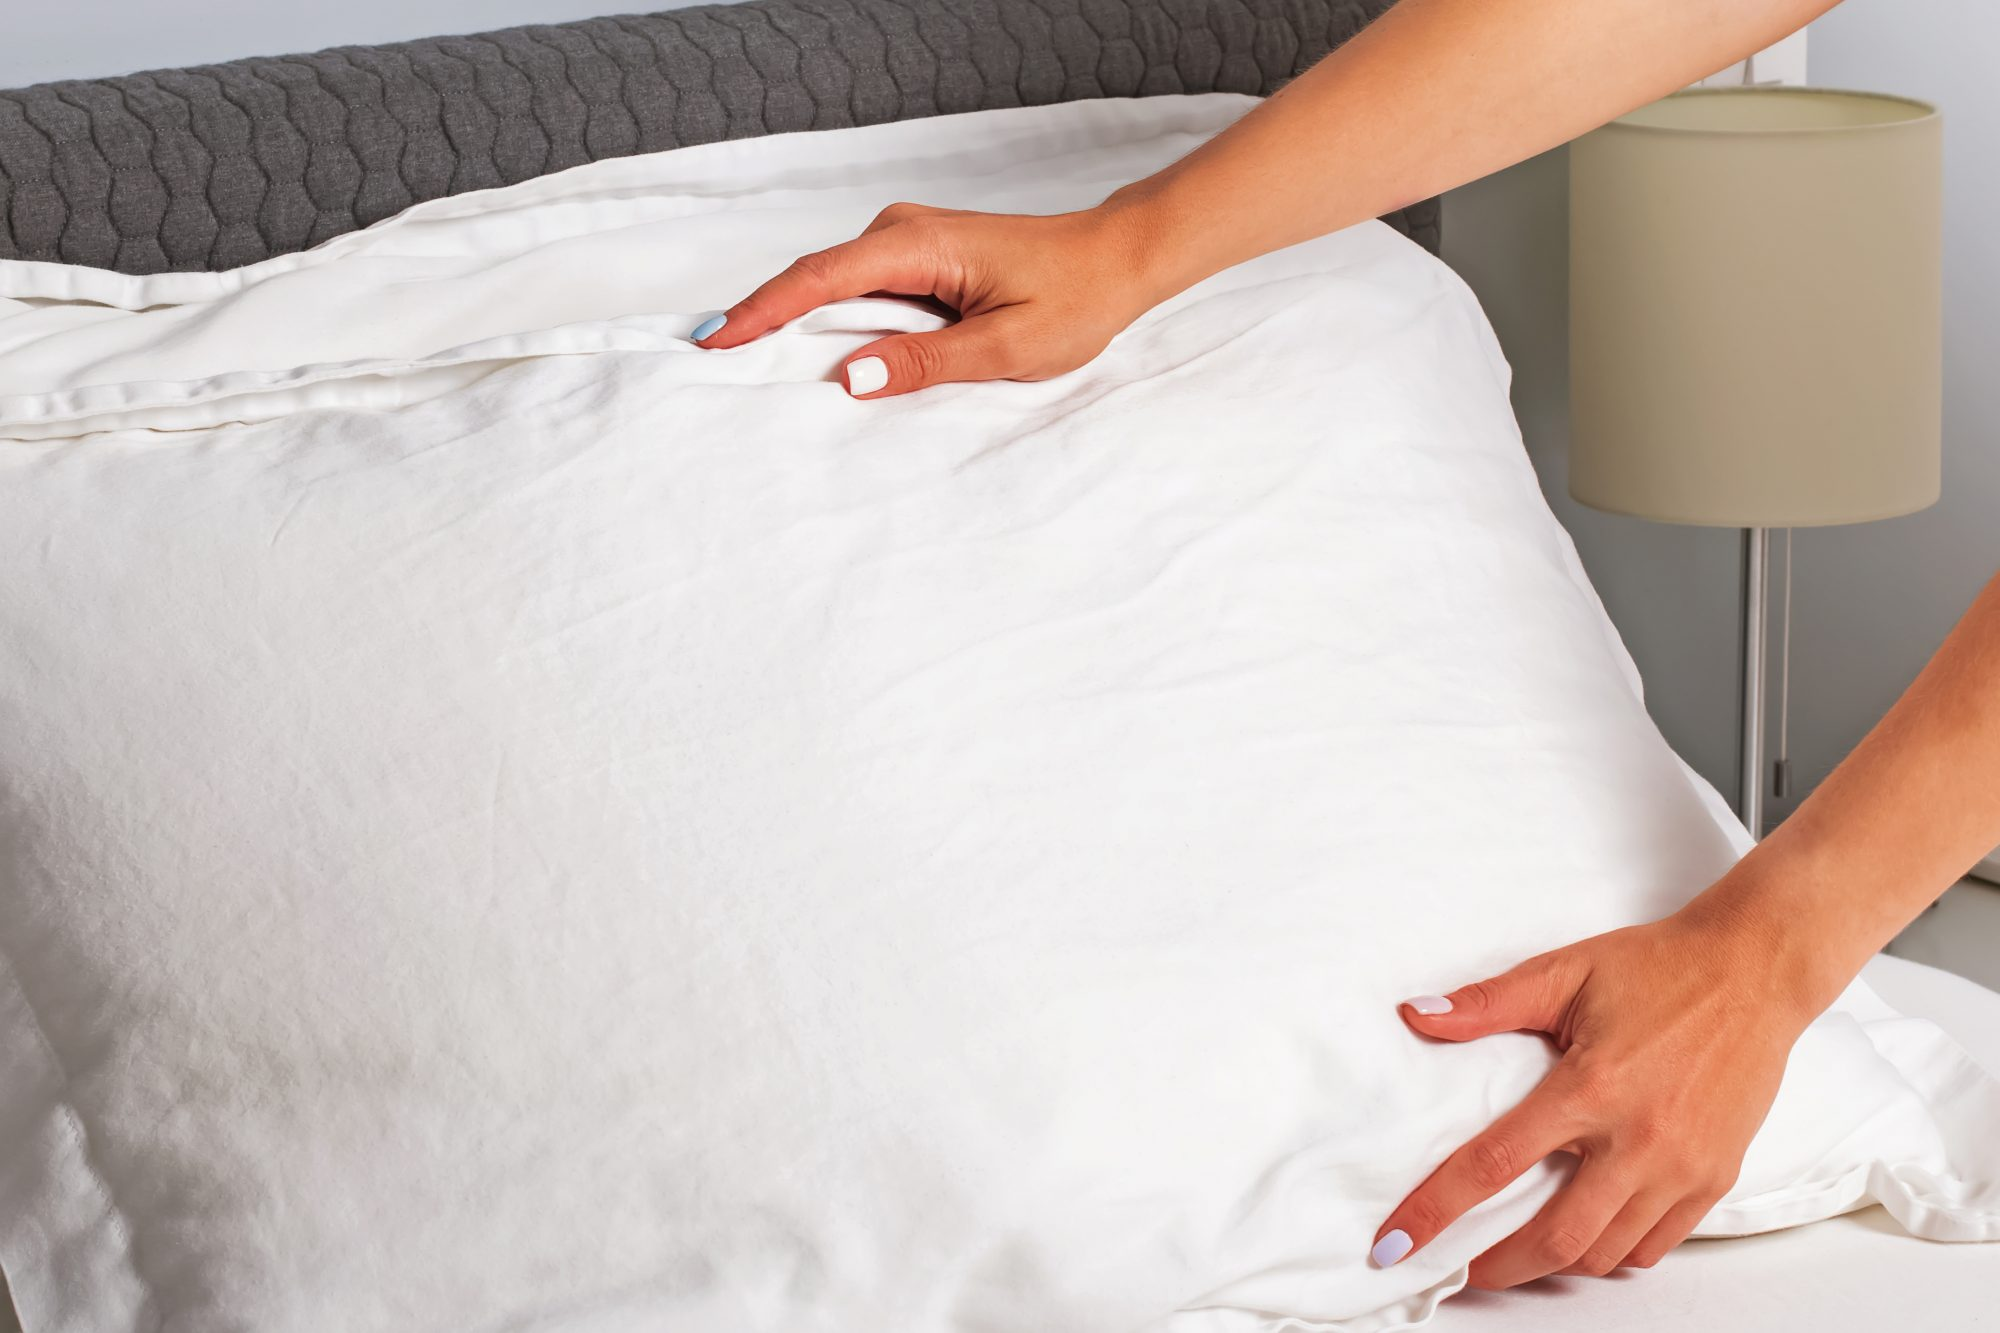 Housekeeper changing the linen and putting pillows on the bed with fresh clean white bedding. change-pillow